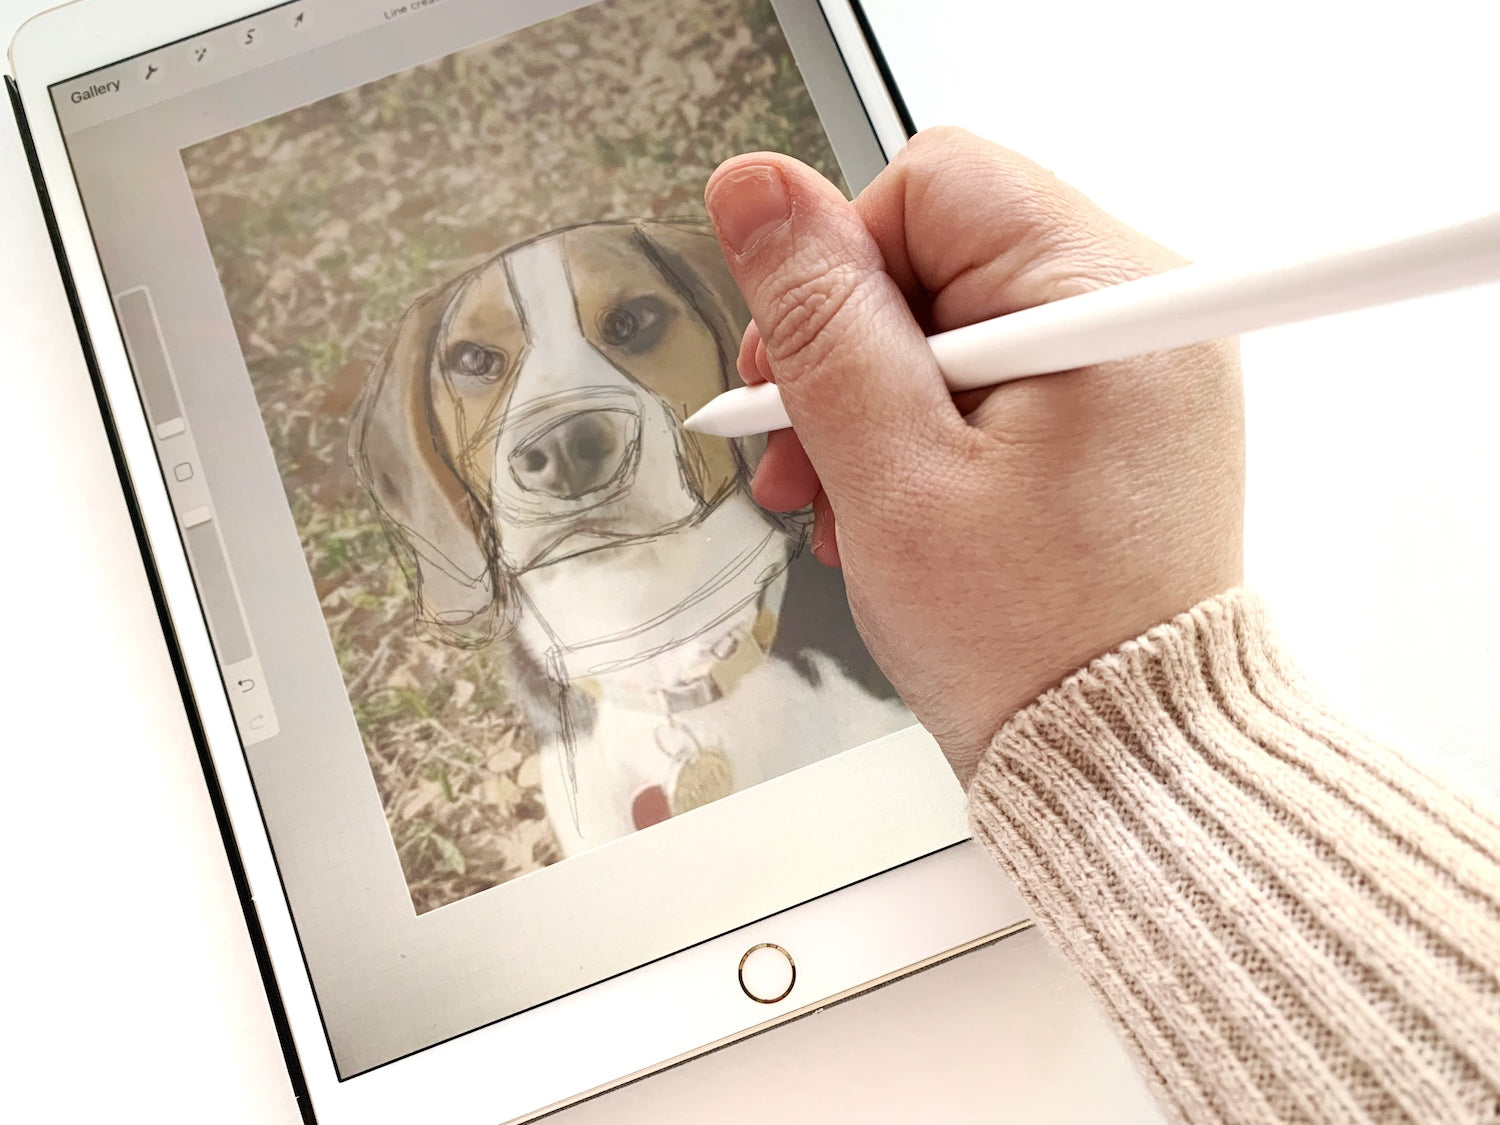 Tracing dog photo in procreate to create layered paper dog portrait